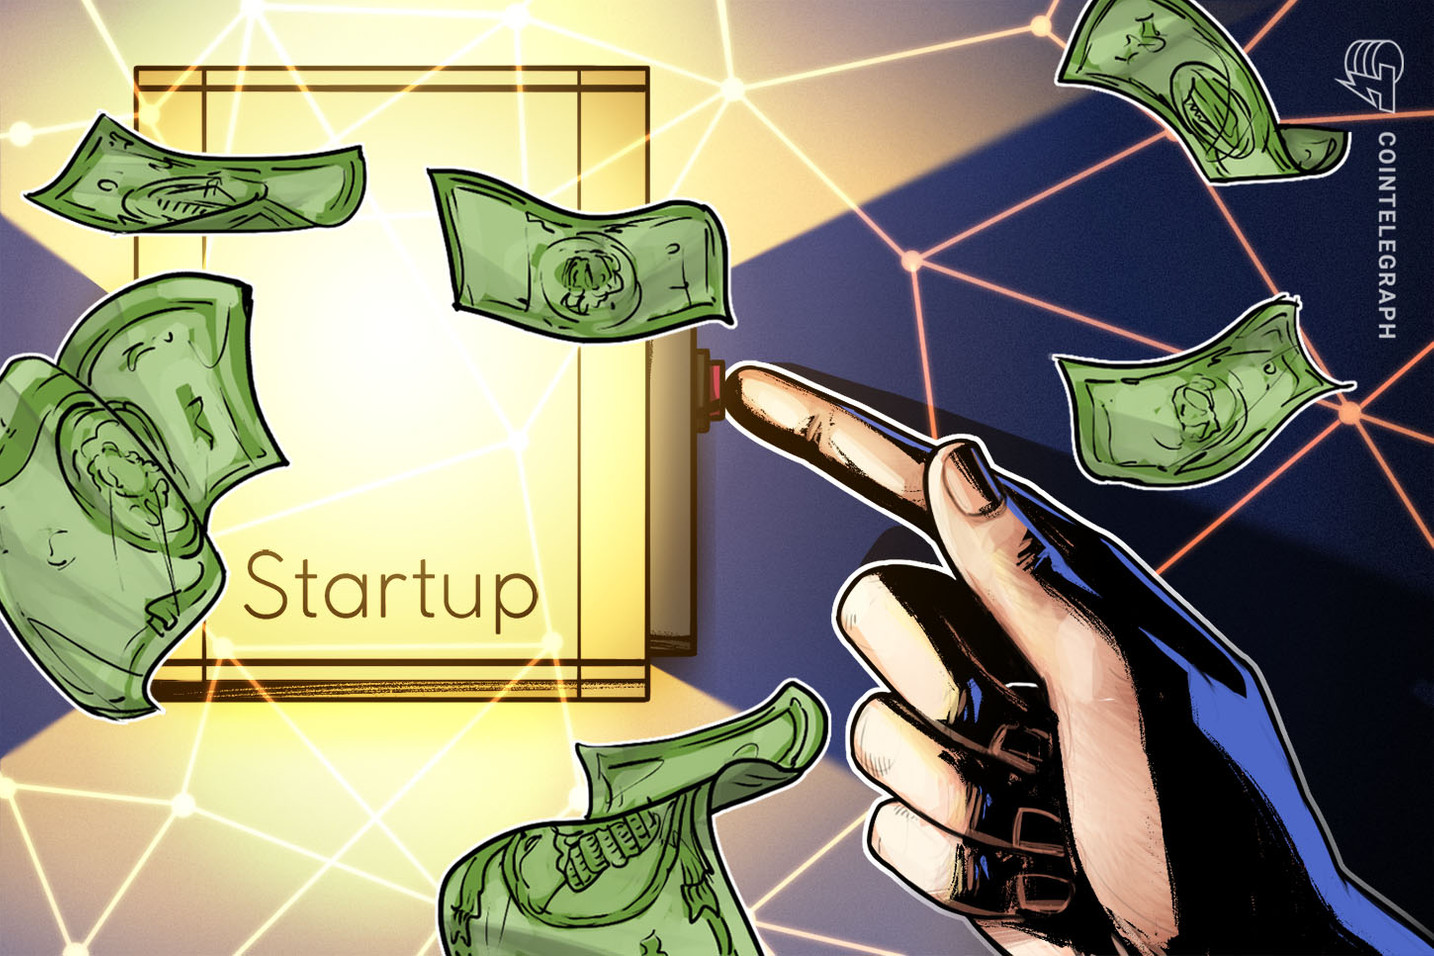 Payment giants drive crypto adoption by engaging with startups